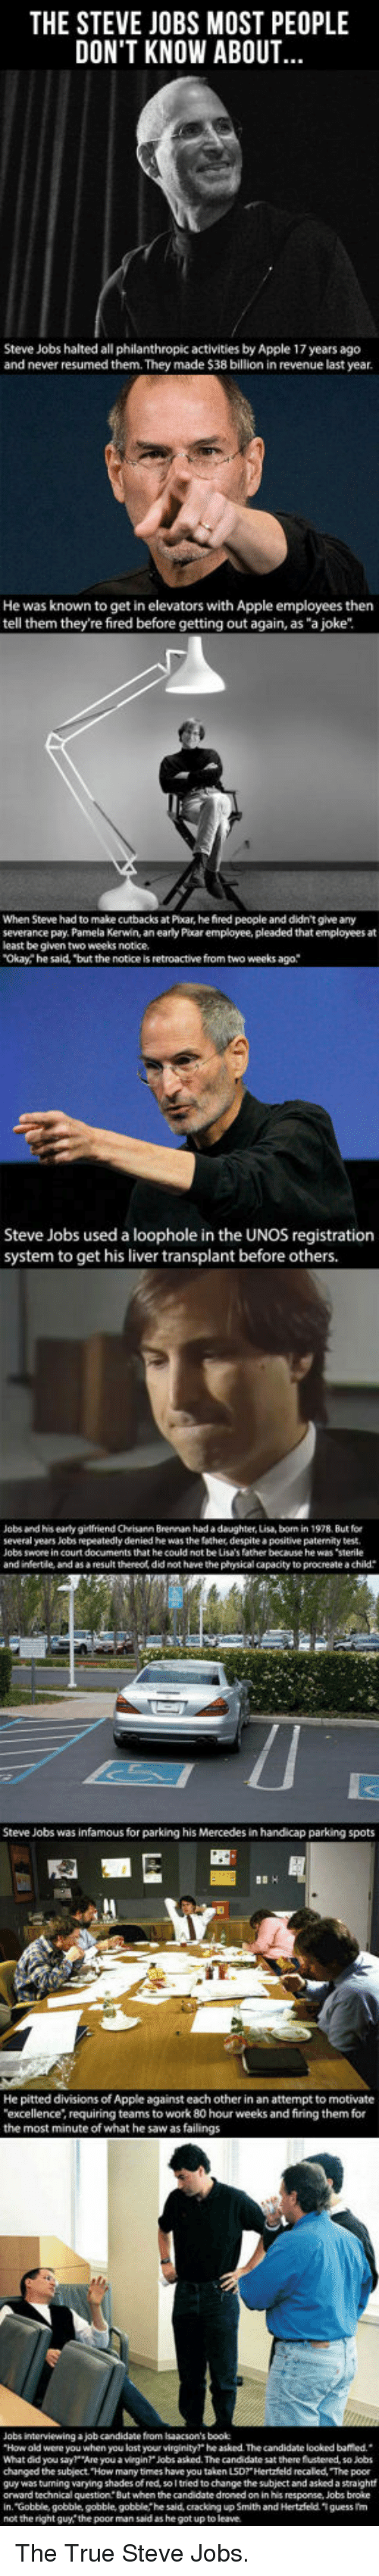 "gobble gobble: THE STEVE JOBS MOST PEOPLE  DON'T KNOW ABOUT.  Steve Jobs halted all philanthropic activities by Apple 17 years ago  and never resumed them. They made $38 billion in revenue last year.  He was known to get in elevators with Apple employees then  tell them they're fired before getting out again, as ""a joke""  When Steve had to make cutbacks at Pixar, he fired people and didn't give any  severance pay. Pamela Kerwin, an early Pcar employee, pleaded that employees at  least be given two weeks notice  Okay, he said, ""but the notice is retroactive from two weeks ago  Steve Jobs used a loophole in the UNOS registration  system to get his liver transplant before others.  Jobs and his earty girlfriend Cheisann Brennan had a daughter, Lisa, bon in 1978. But for  several years Jobs repeatedly denied he was the father despite a positive paternity best  Jobs swore in court documents that he could not be Lisa's father because he was ""sterile  and infertle, and as a result thereot did not have the physical capacity to procreate a chikd  Steve Jobs was infamous for parking his Mercedes in handicap parking spots  He pitted divisions of Apple against each other in an attempt to motivate  excellence, requiring teams to work 80 hour weeks and firing them for  the most minute of what he saw as failings  Jobs interviewing a job candidate feom saacson's booke  How old were you when you lost your virginityl"" he asked. The candidate looked baffied.  What did you sayl ""Are you a viegin?"" Jobs asked. The candidate sat there flustered, so Jobs  changed the subject.""How many times have you taken LSD?"" Hertzfeld recalled, The poor  guy was tuming varying shades of red, so I tried to change the subject and asked a straight  orward technical question But when the candidate droned on in his response, Jobs broke  in. ""Gobble, gobble, gobble, gobble,he said, cracking up Smith and Hertzfeld. 7 guess Im  not the right guy,"" the poor man said as he got up to leave. <p>The True Steve Jobs.</p>"